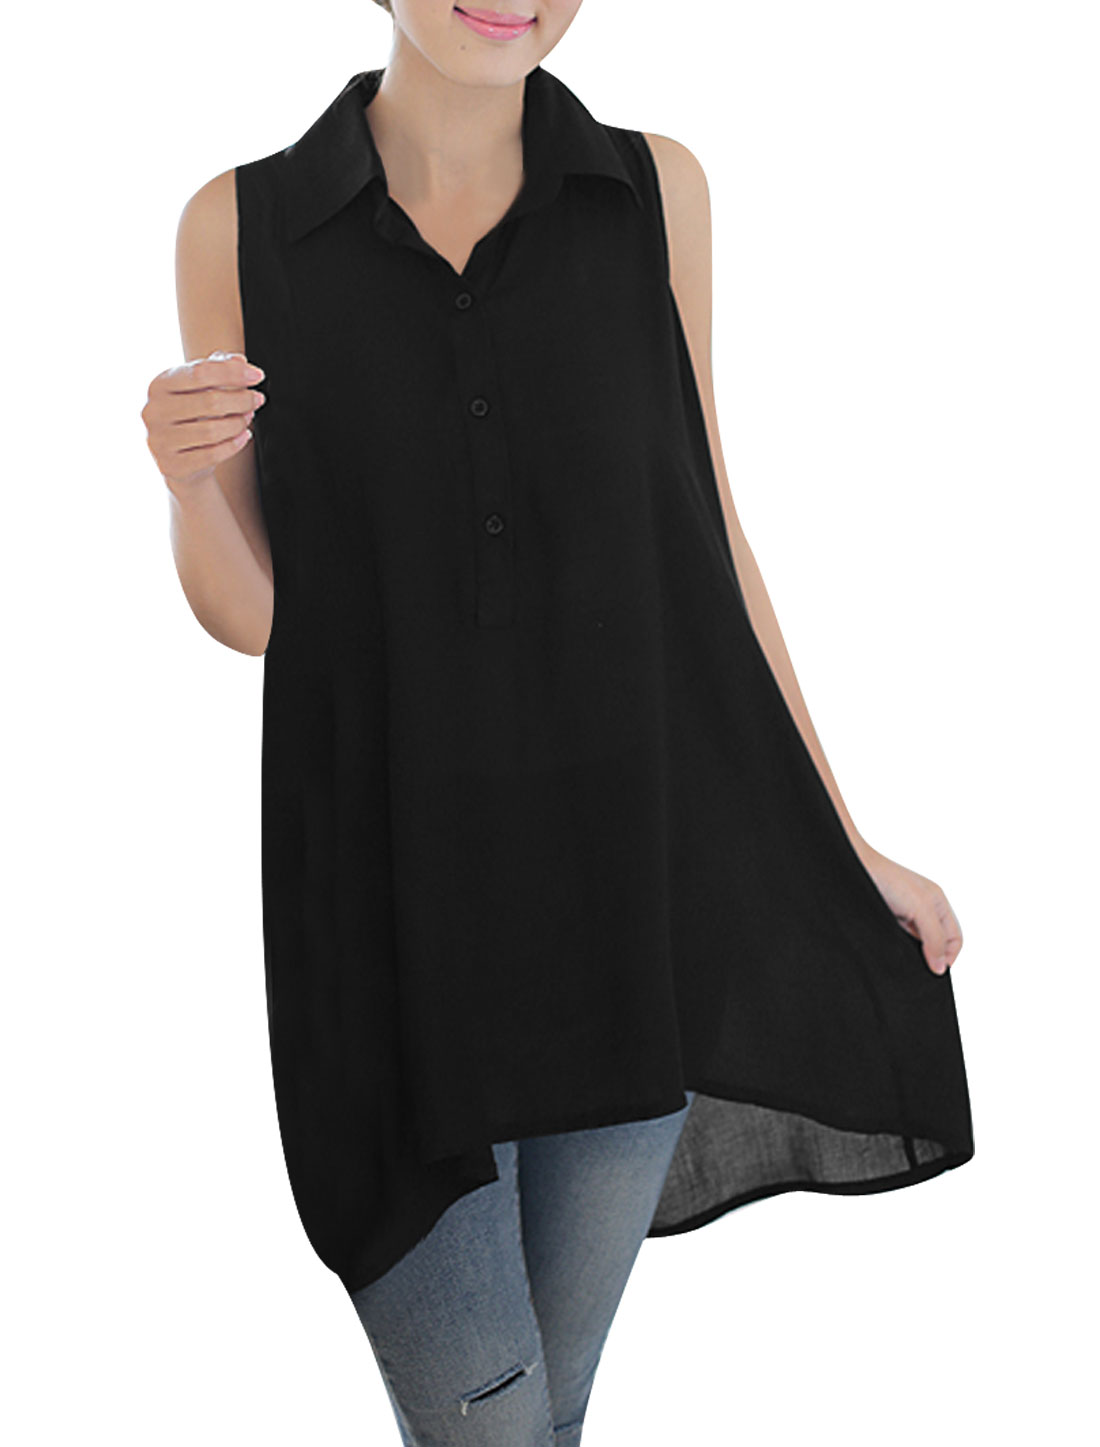 Woman Point Collar 1/2 Button Front Lace Splice Back Tunic Top Black M